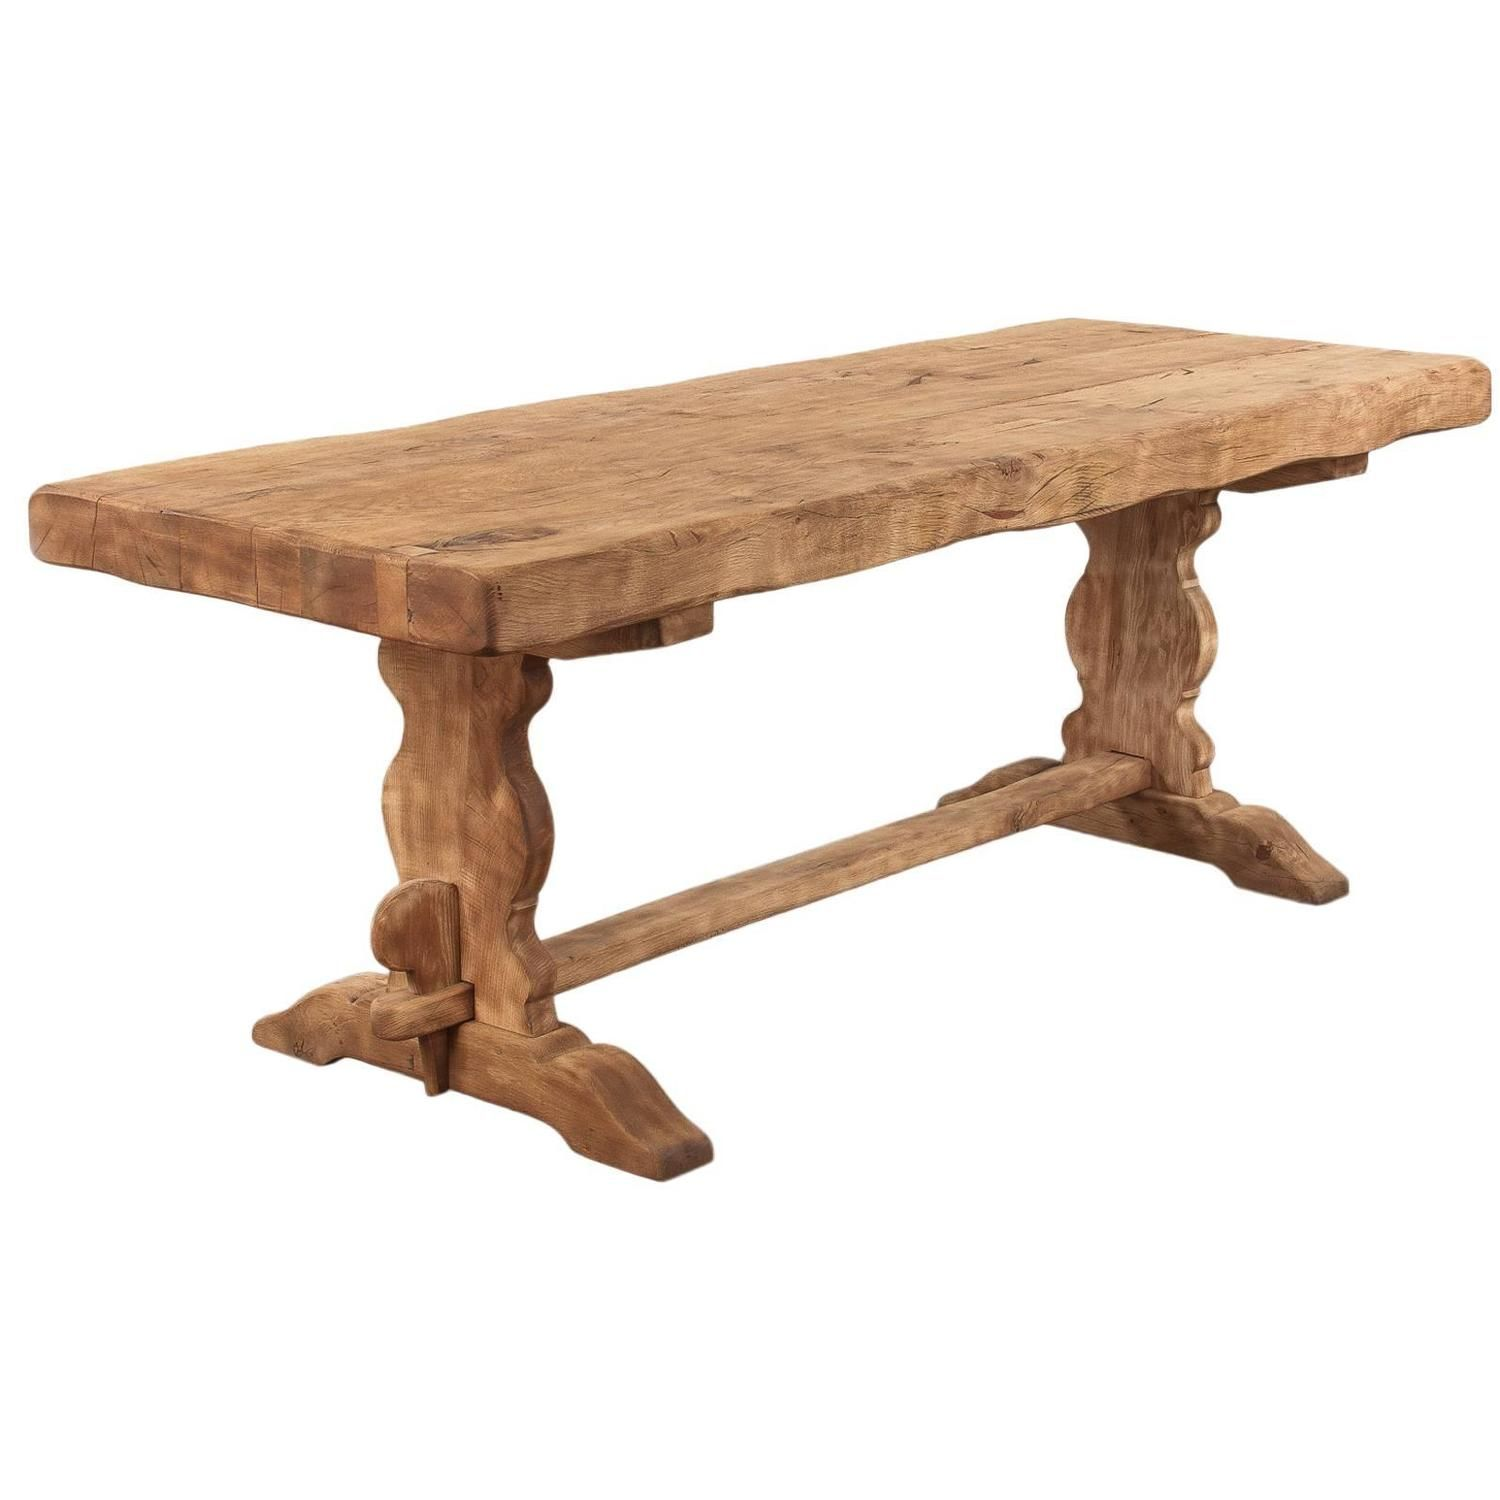 French Country Washed Oak Trestle Table, Early 1900s